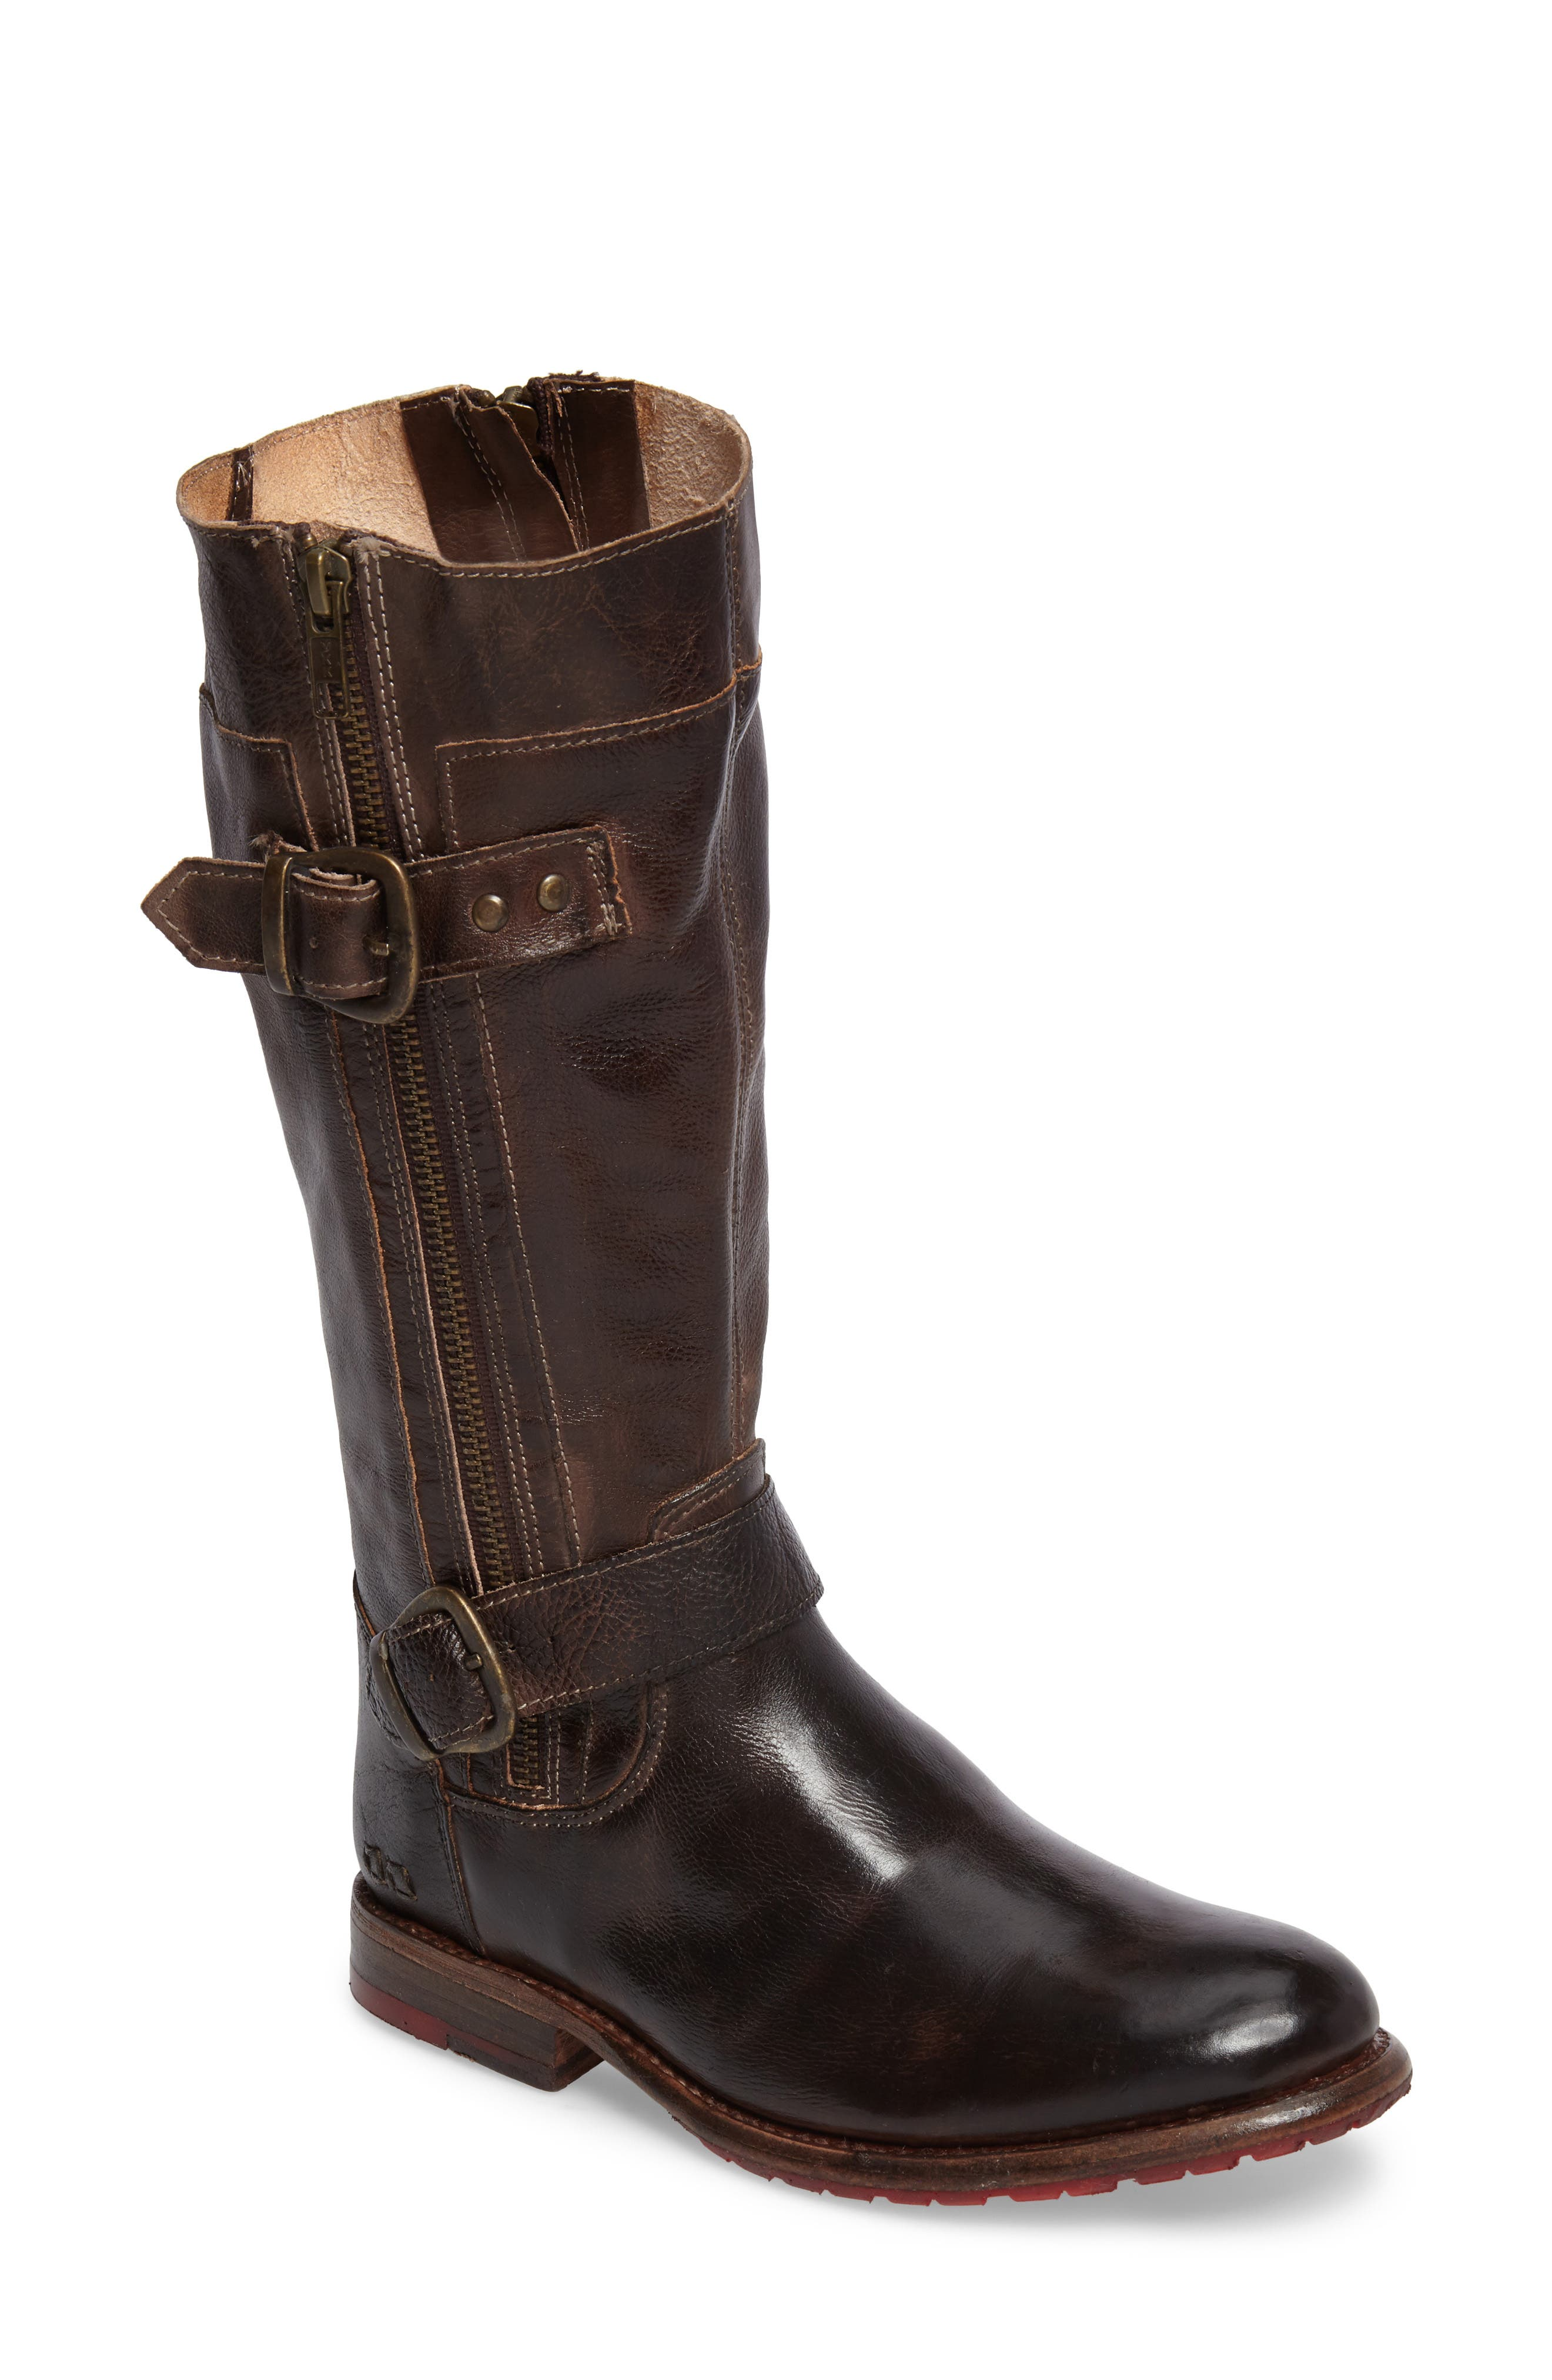 Bed Stu Gogo Boot, Brown